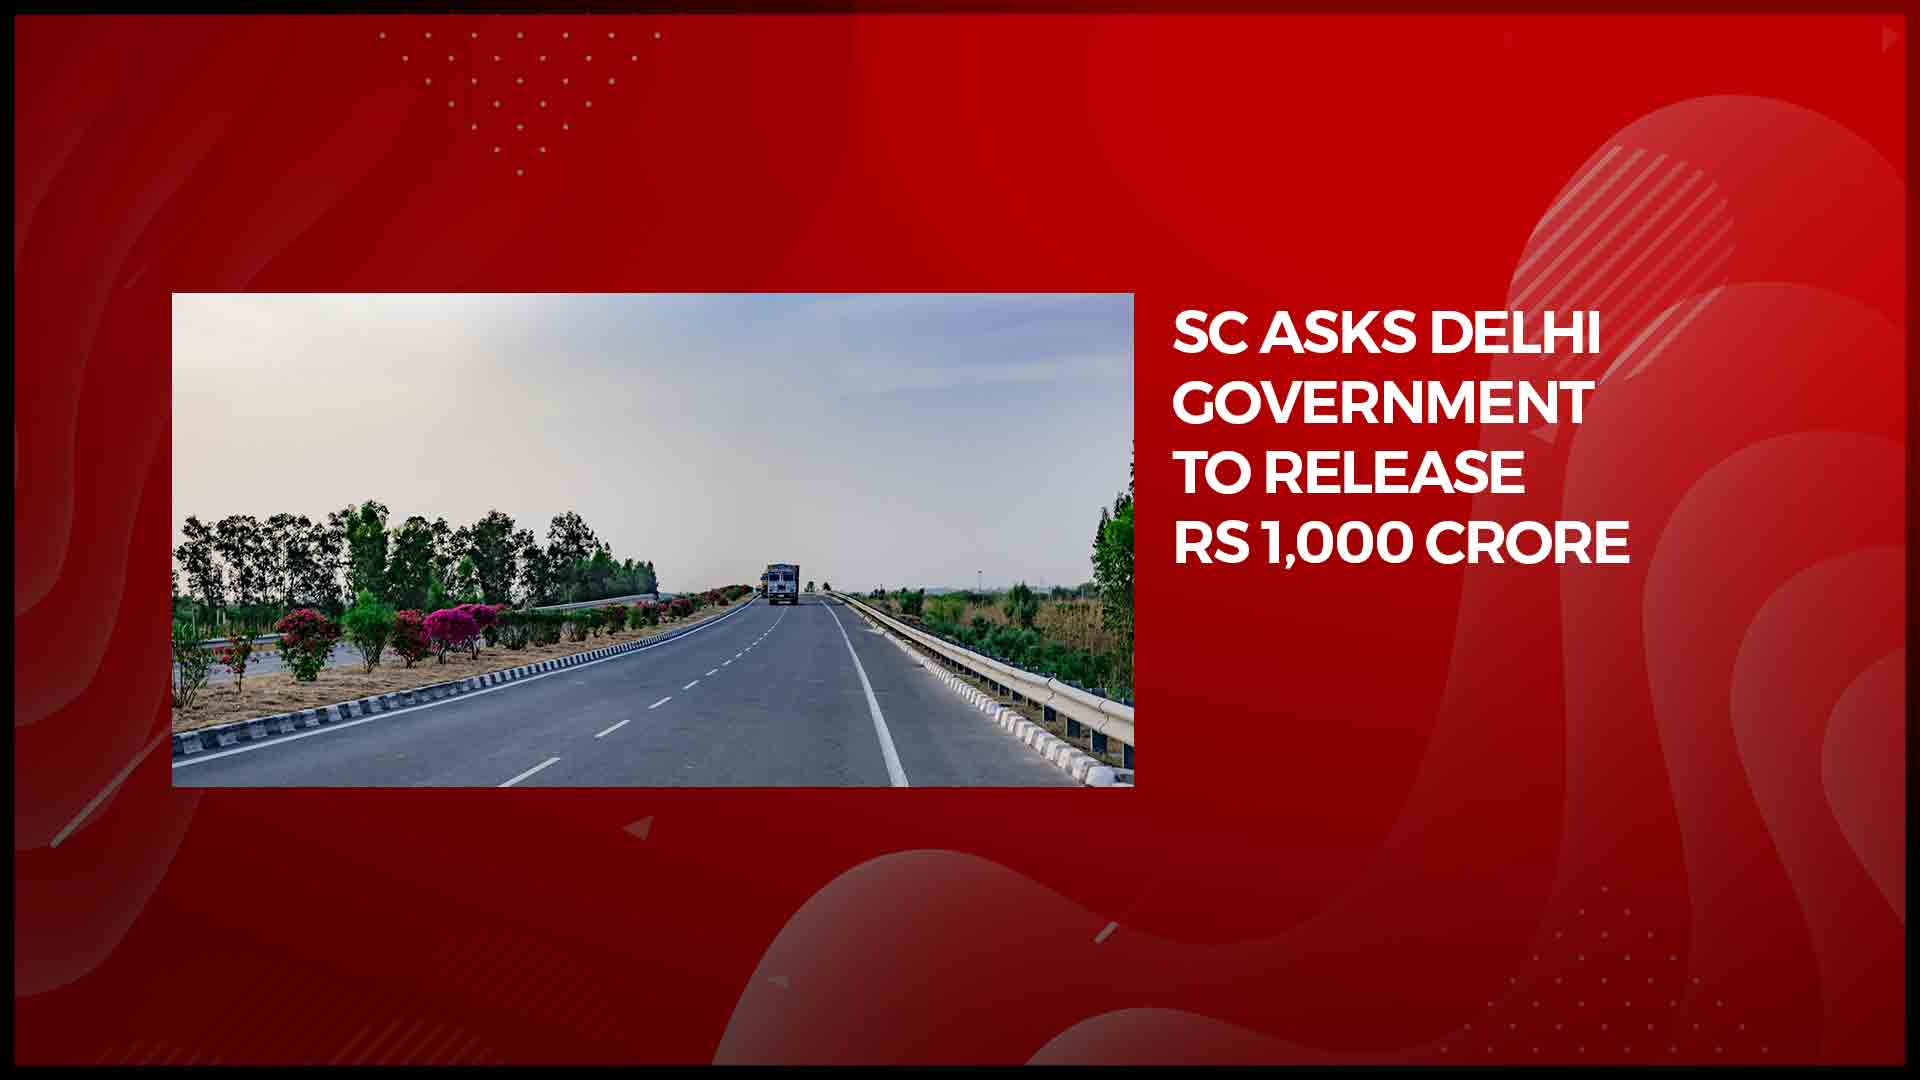 SC asks Delhi govt to release Rs 1,000 cr for eastern, western peripheral expressways